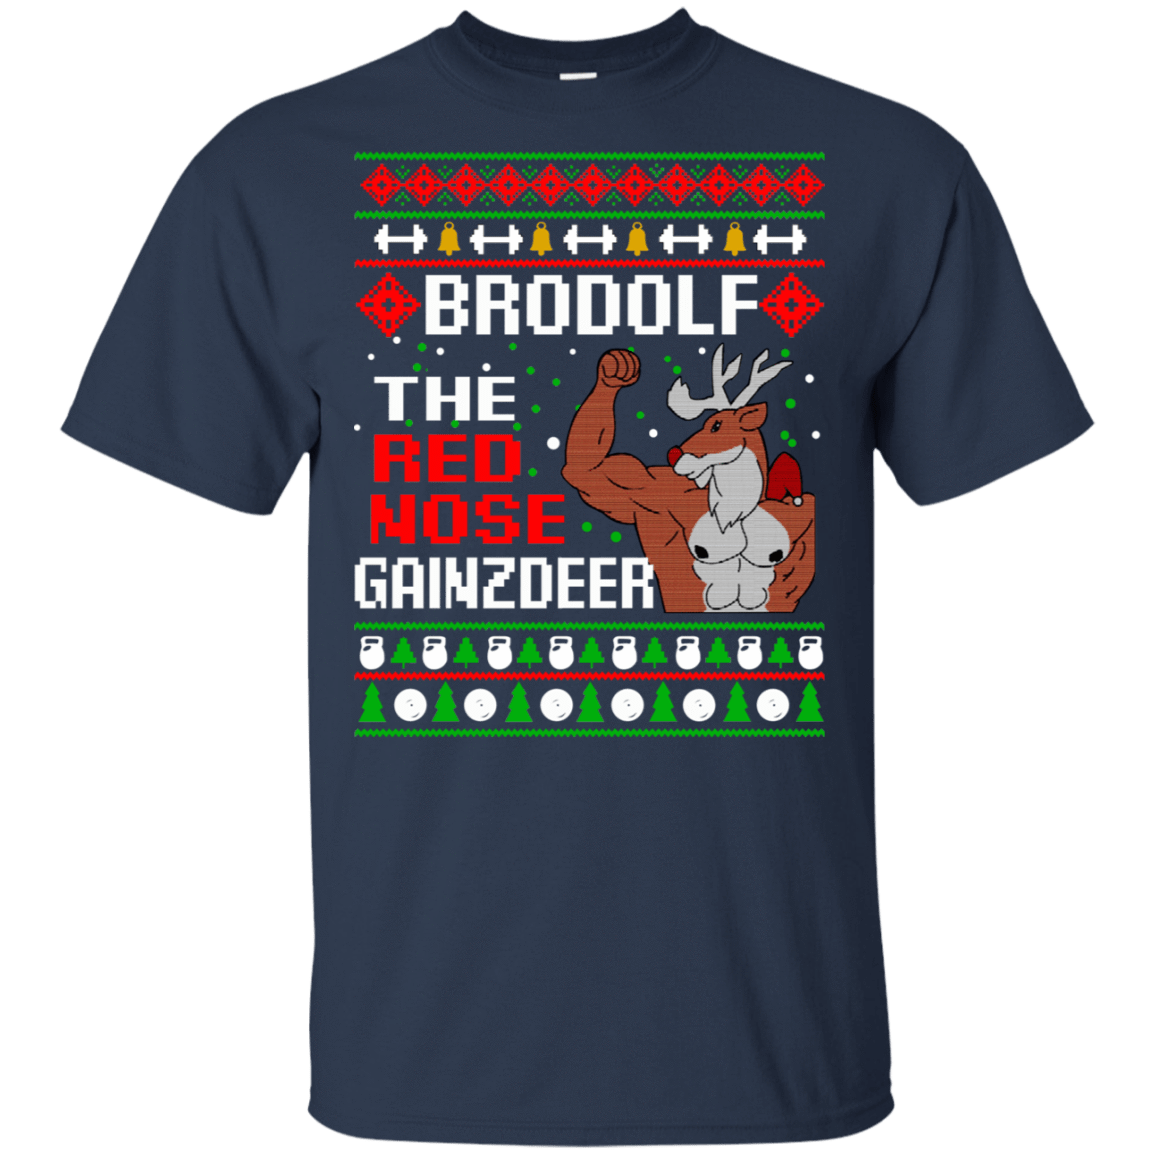 Brodolf The Red Nose Gainzdeer Christmas Sweater, T-Shirts & Hoodies 22-111-73888882-250 - Tee Ript